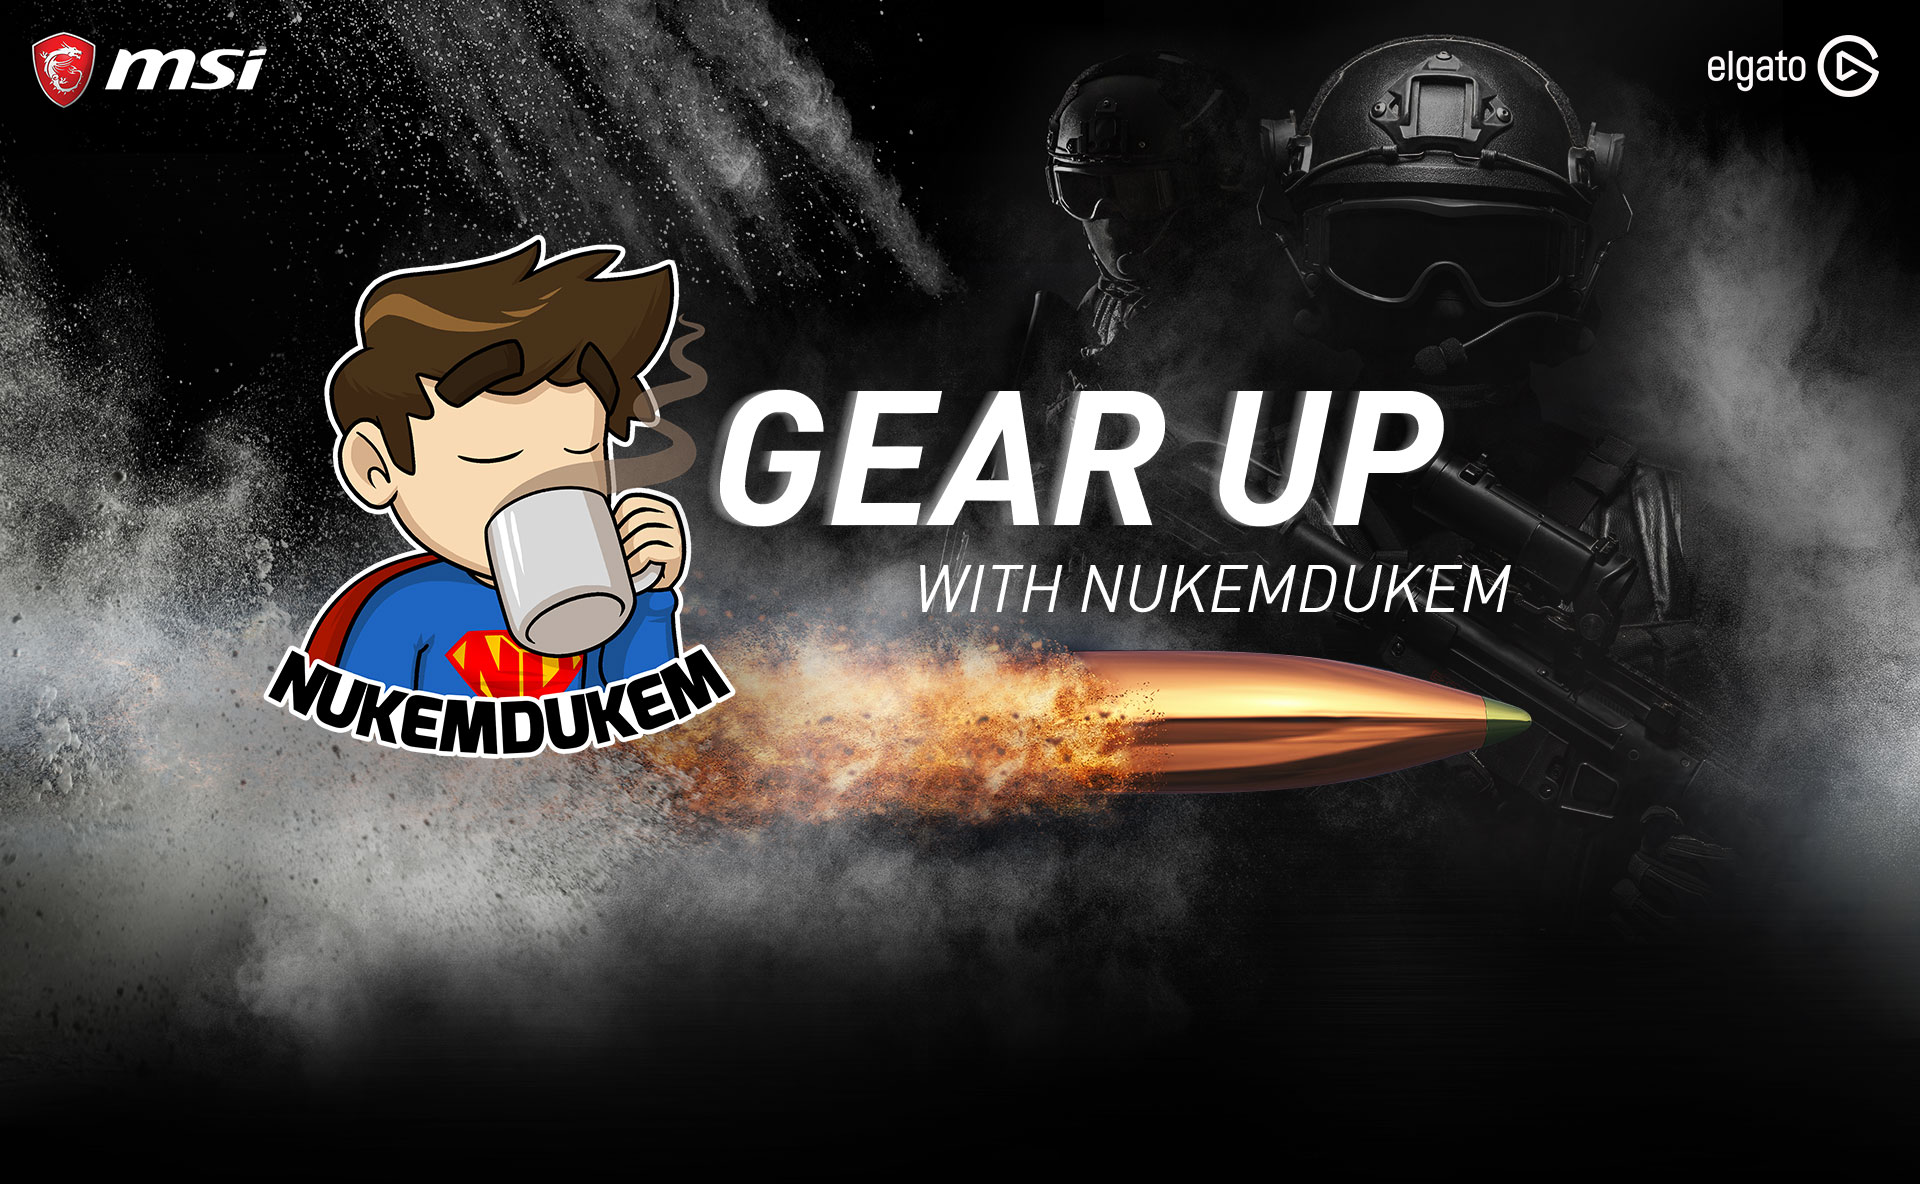 Gear Up with NukemDukem. Win MSI and Elgato Gear!